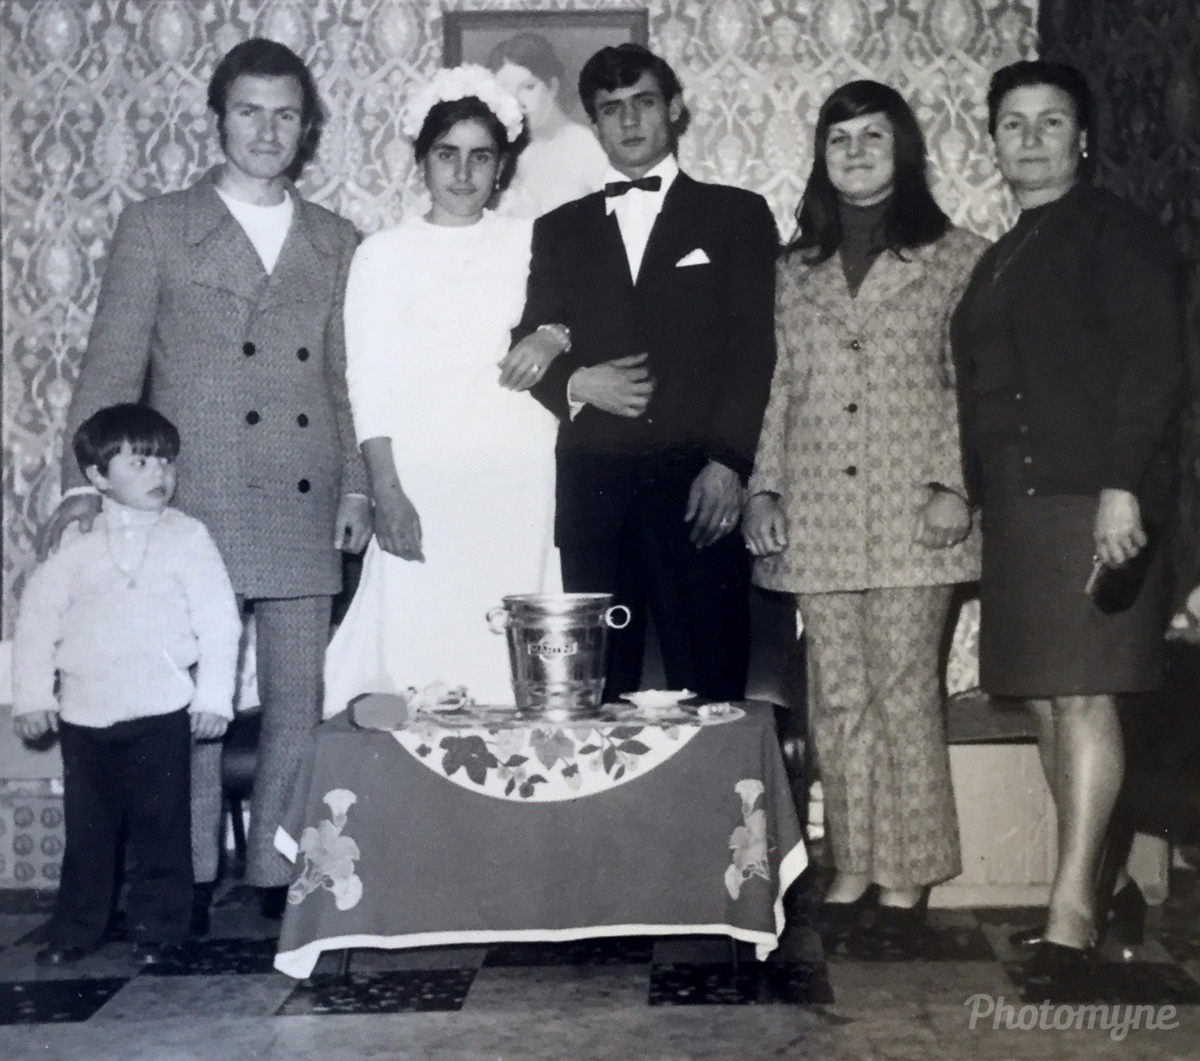 Matrimonio in Calabria (Wedding in Calabria), Varapodio, Italy, 1971